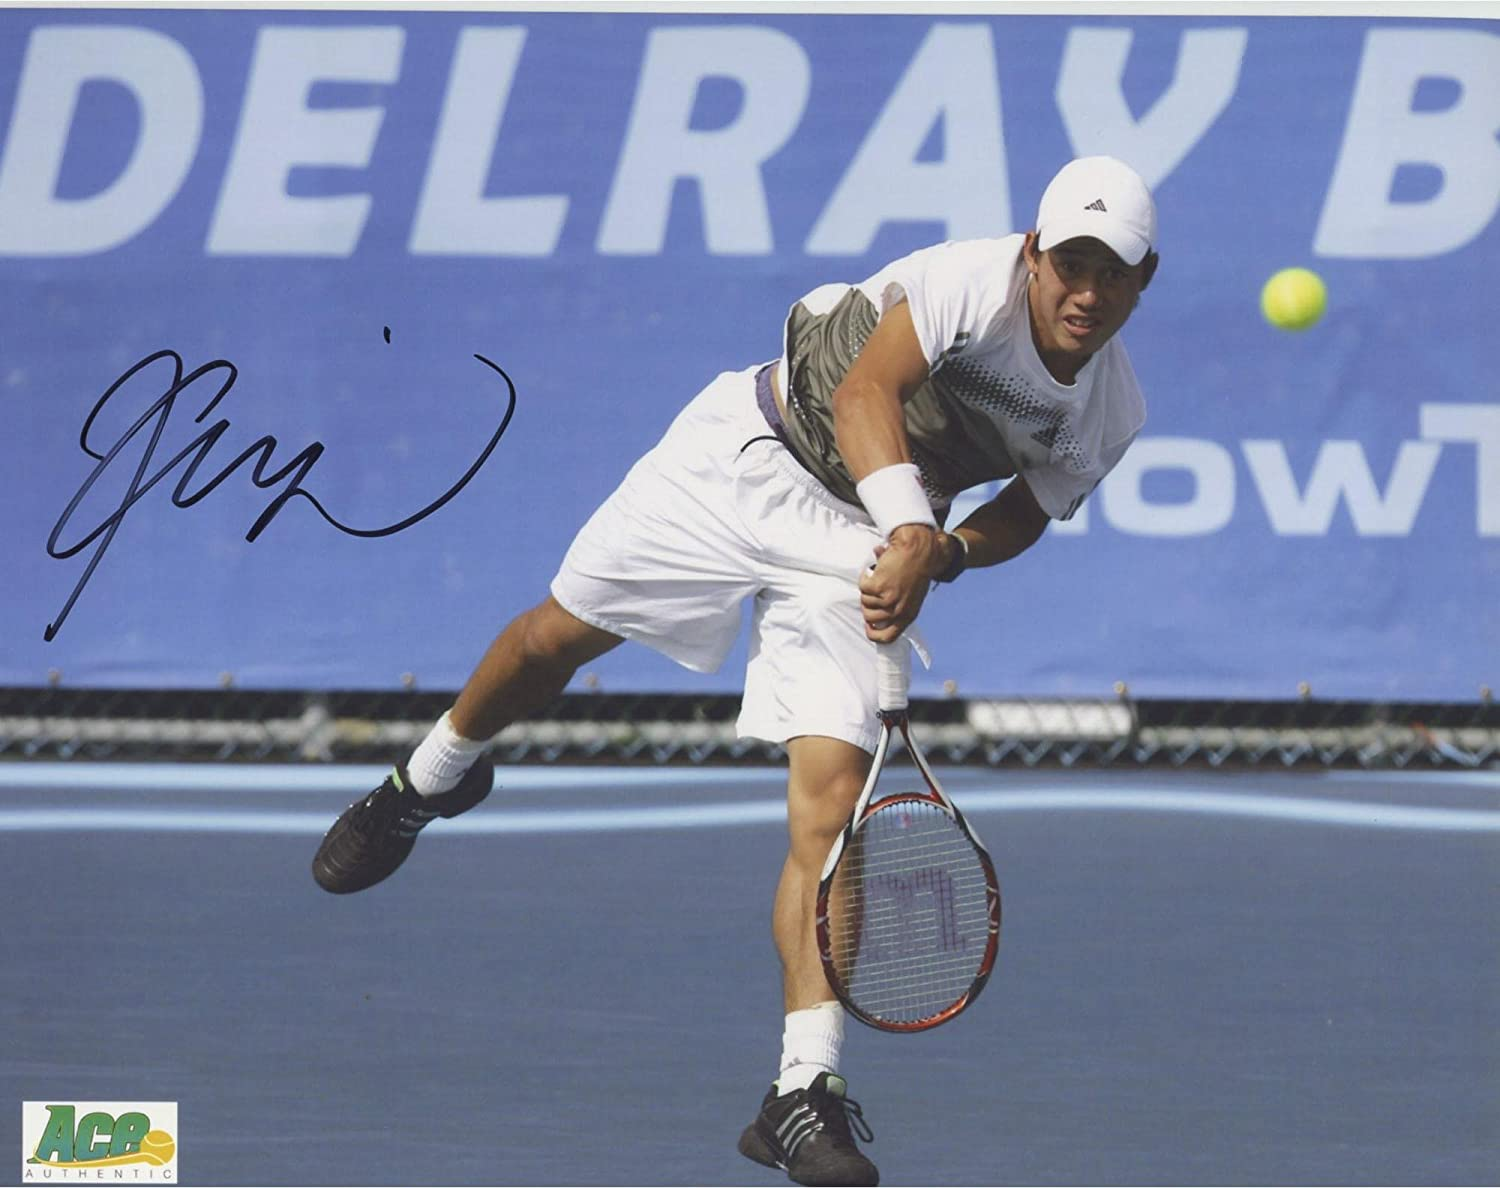 Kei Nishikori Autographed 8' x 10' Serve Photograph - Fanatics Authentic Certified - Autographed Tennis Photos